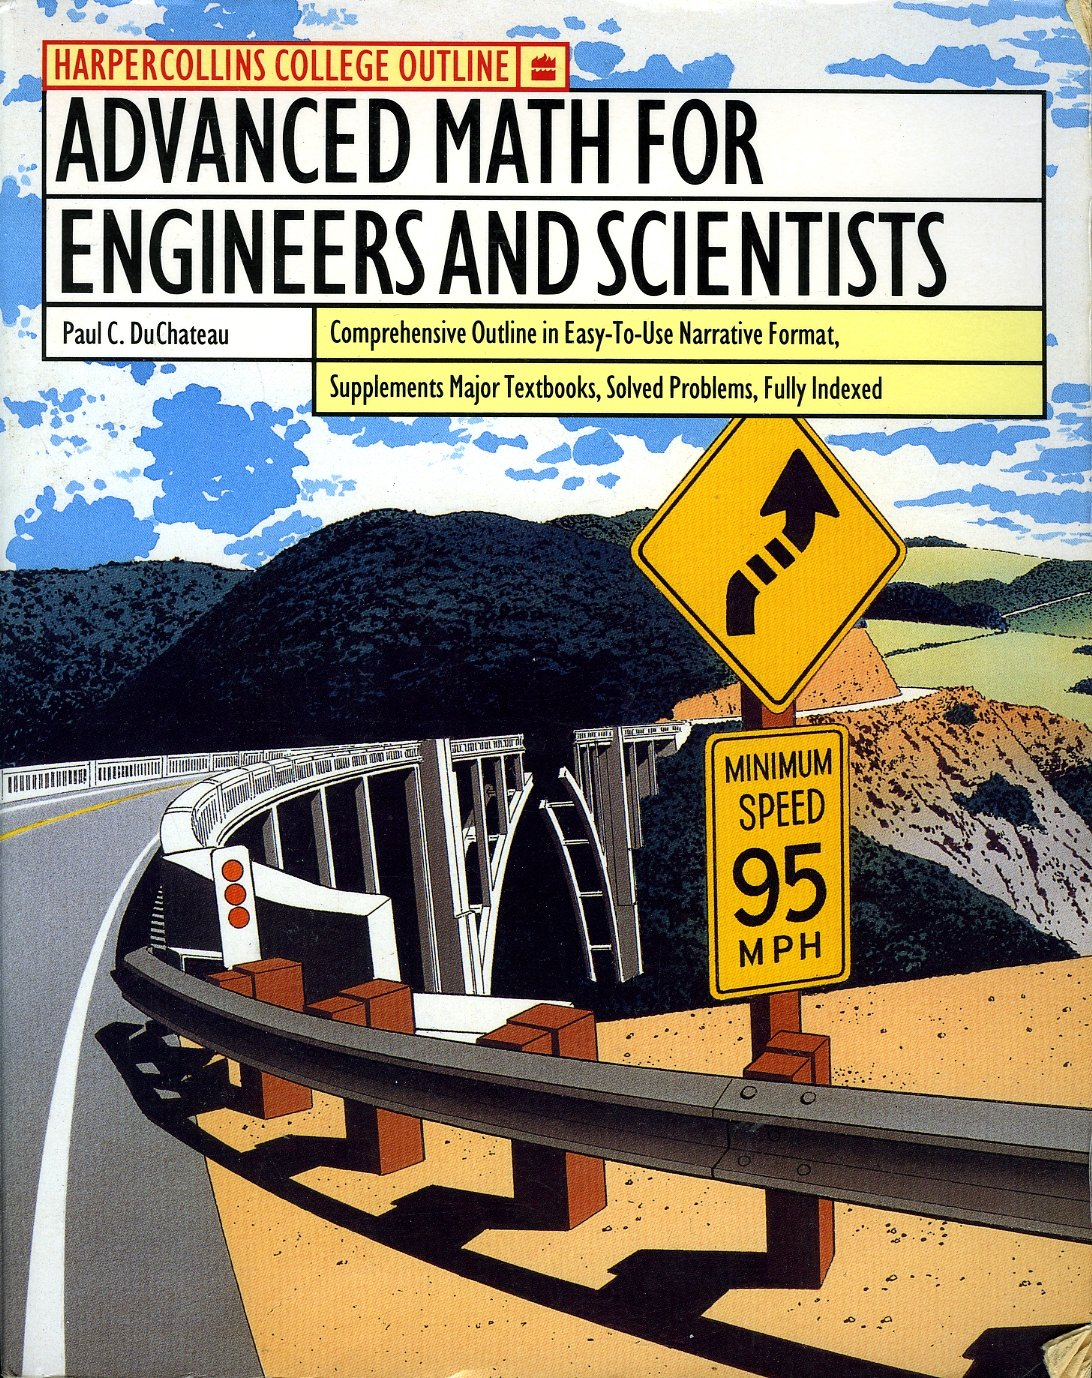 Advanced Math for Engineers and Scientists: Paul C. Duchateau:  9780064671514: Books - Amazon.ca